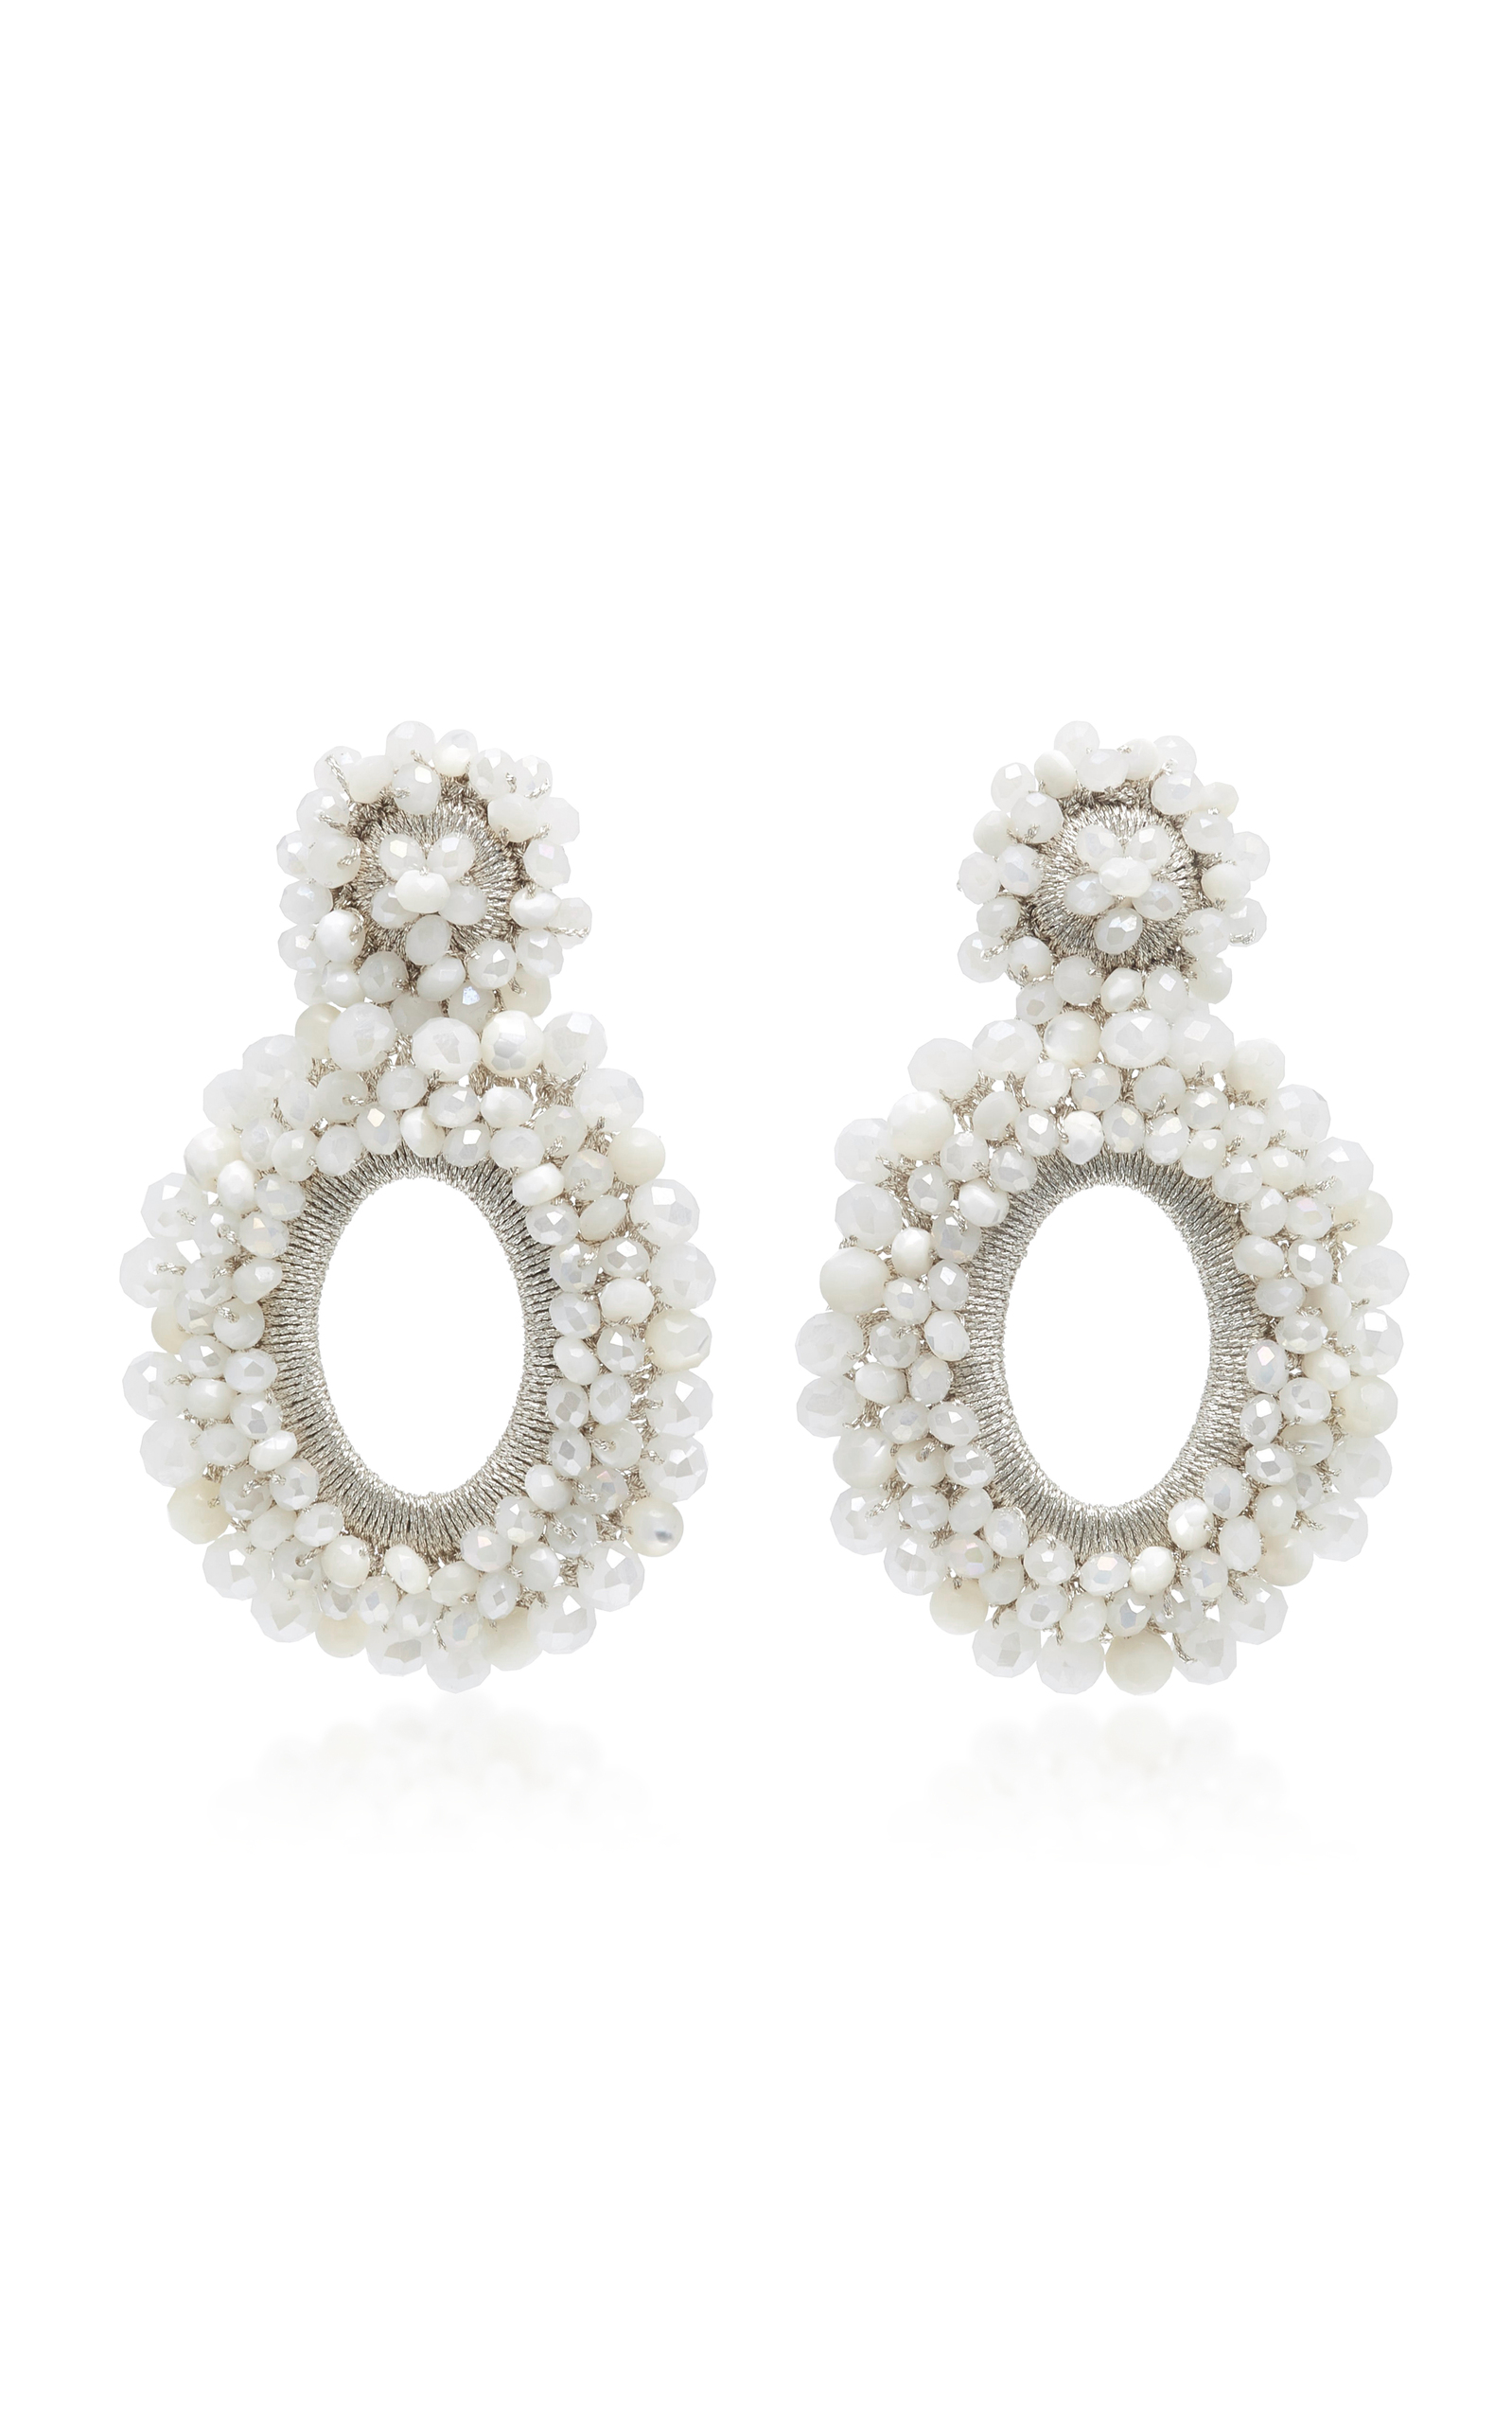 BIBI MARINI WHITE CRYSTAL AND MOTHER OF PEARL PRIMROSE EARRINGS